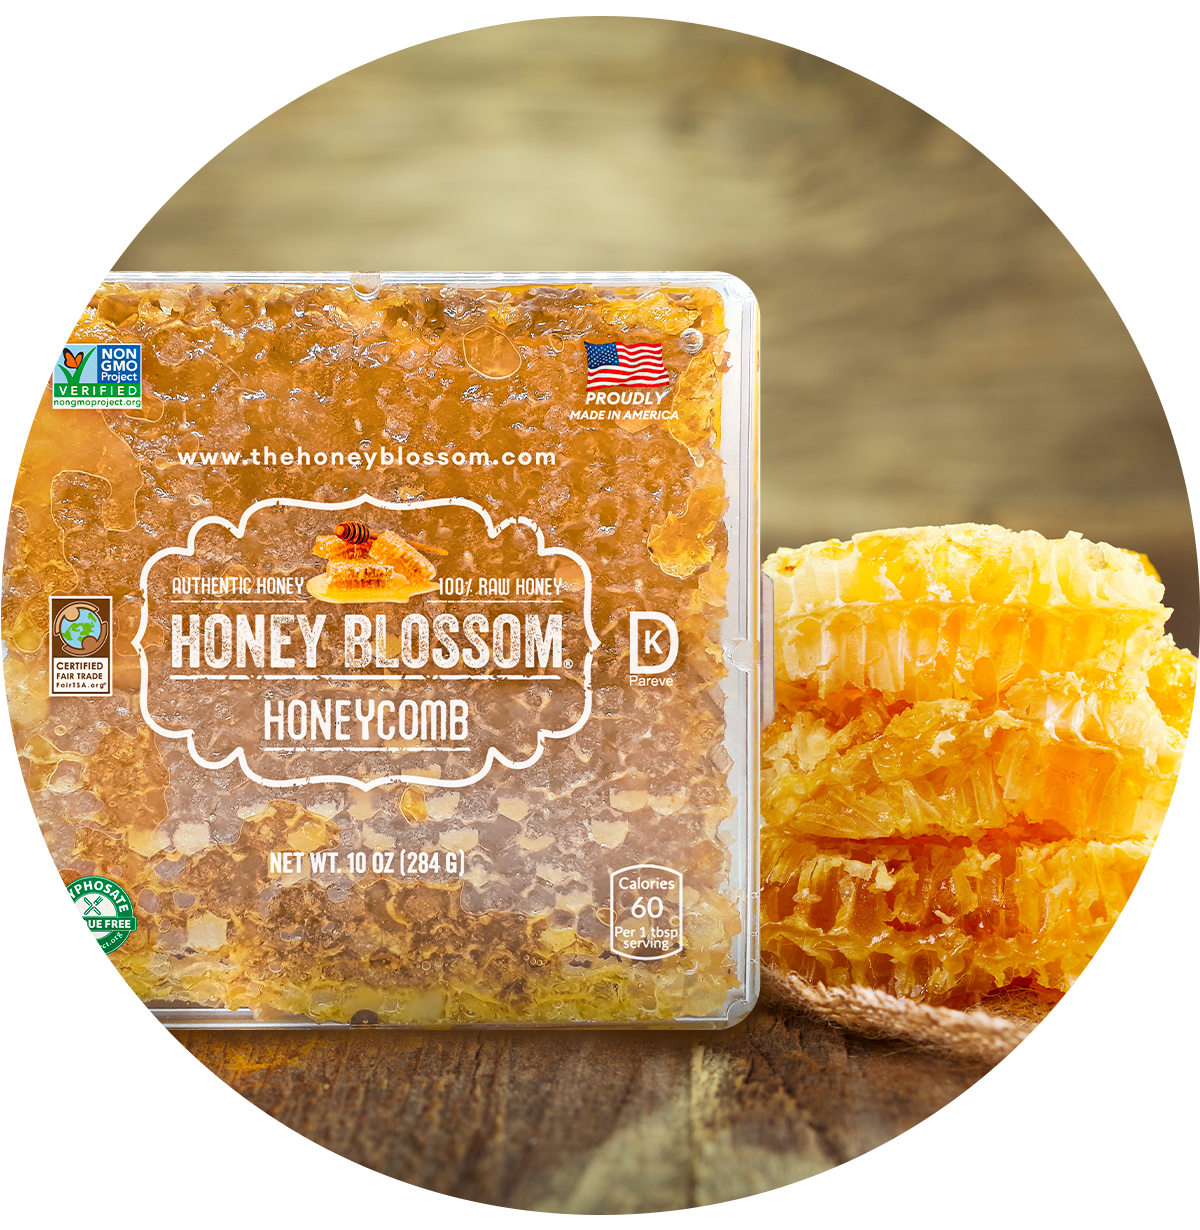 Image of Honey Blossom honeycomb box on a wooden table, and 2 honeycombs behind it.